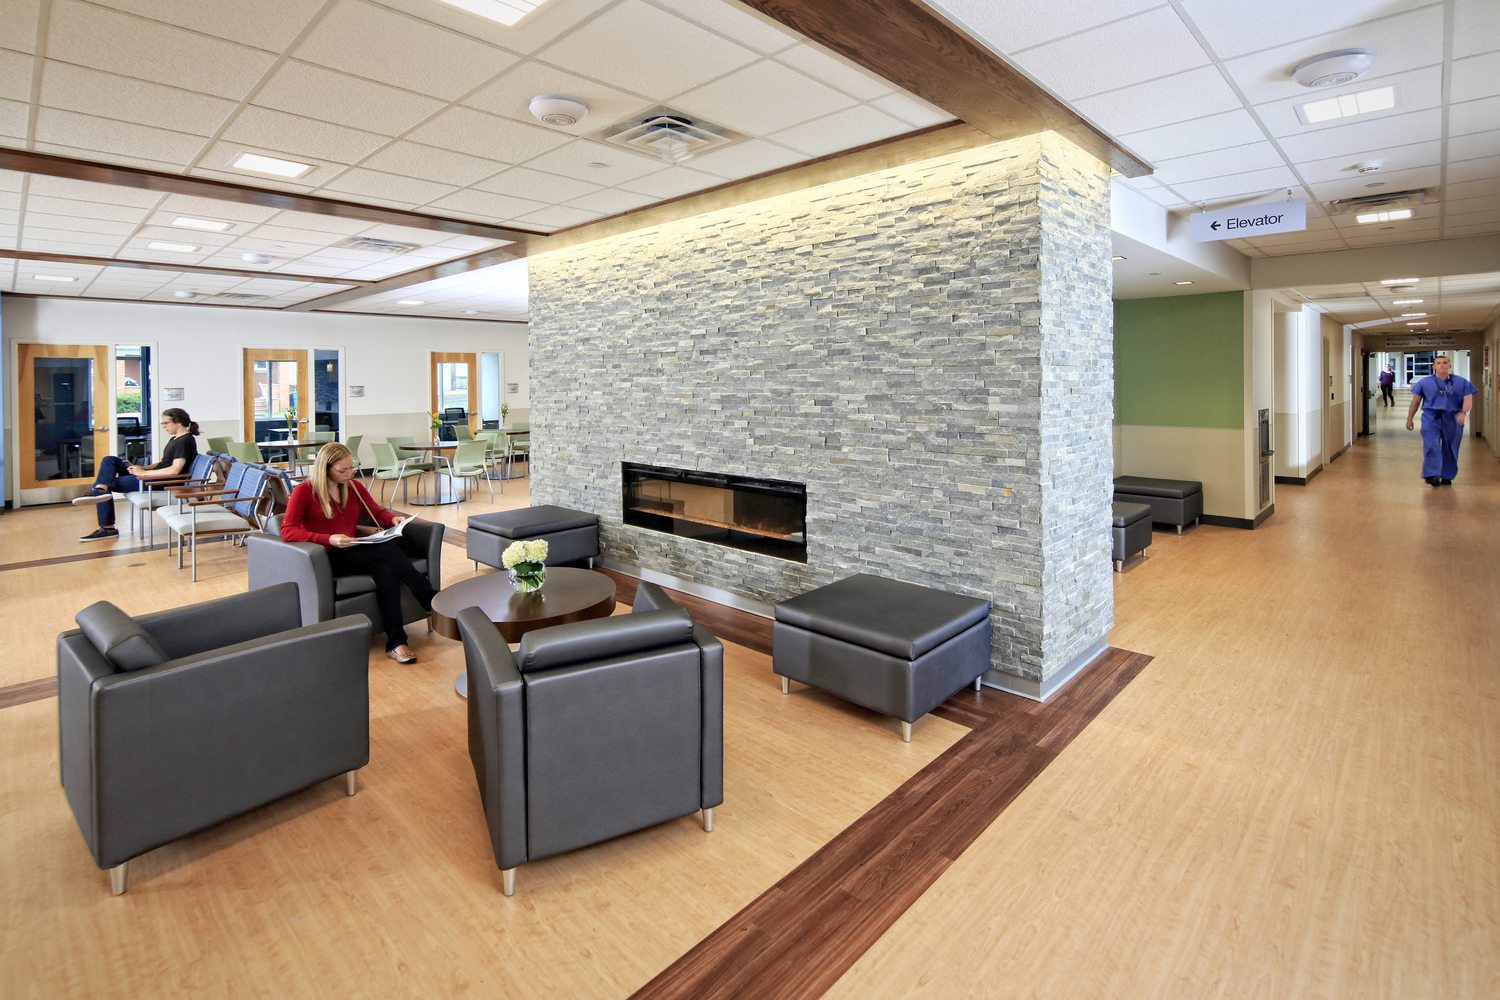 Niagara Falls Memorial Medical Center, Golisano Center for Community Health